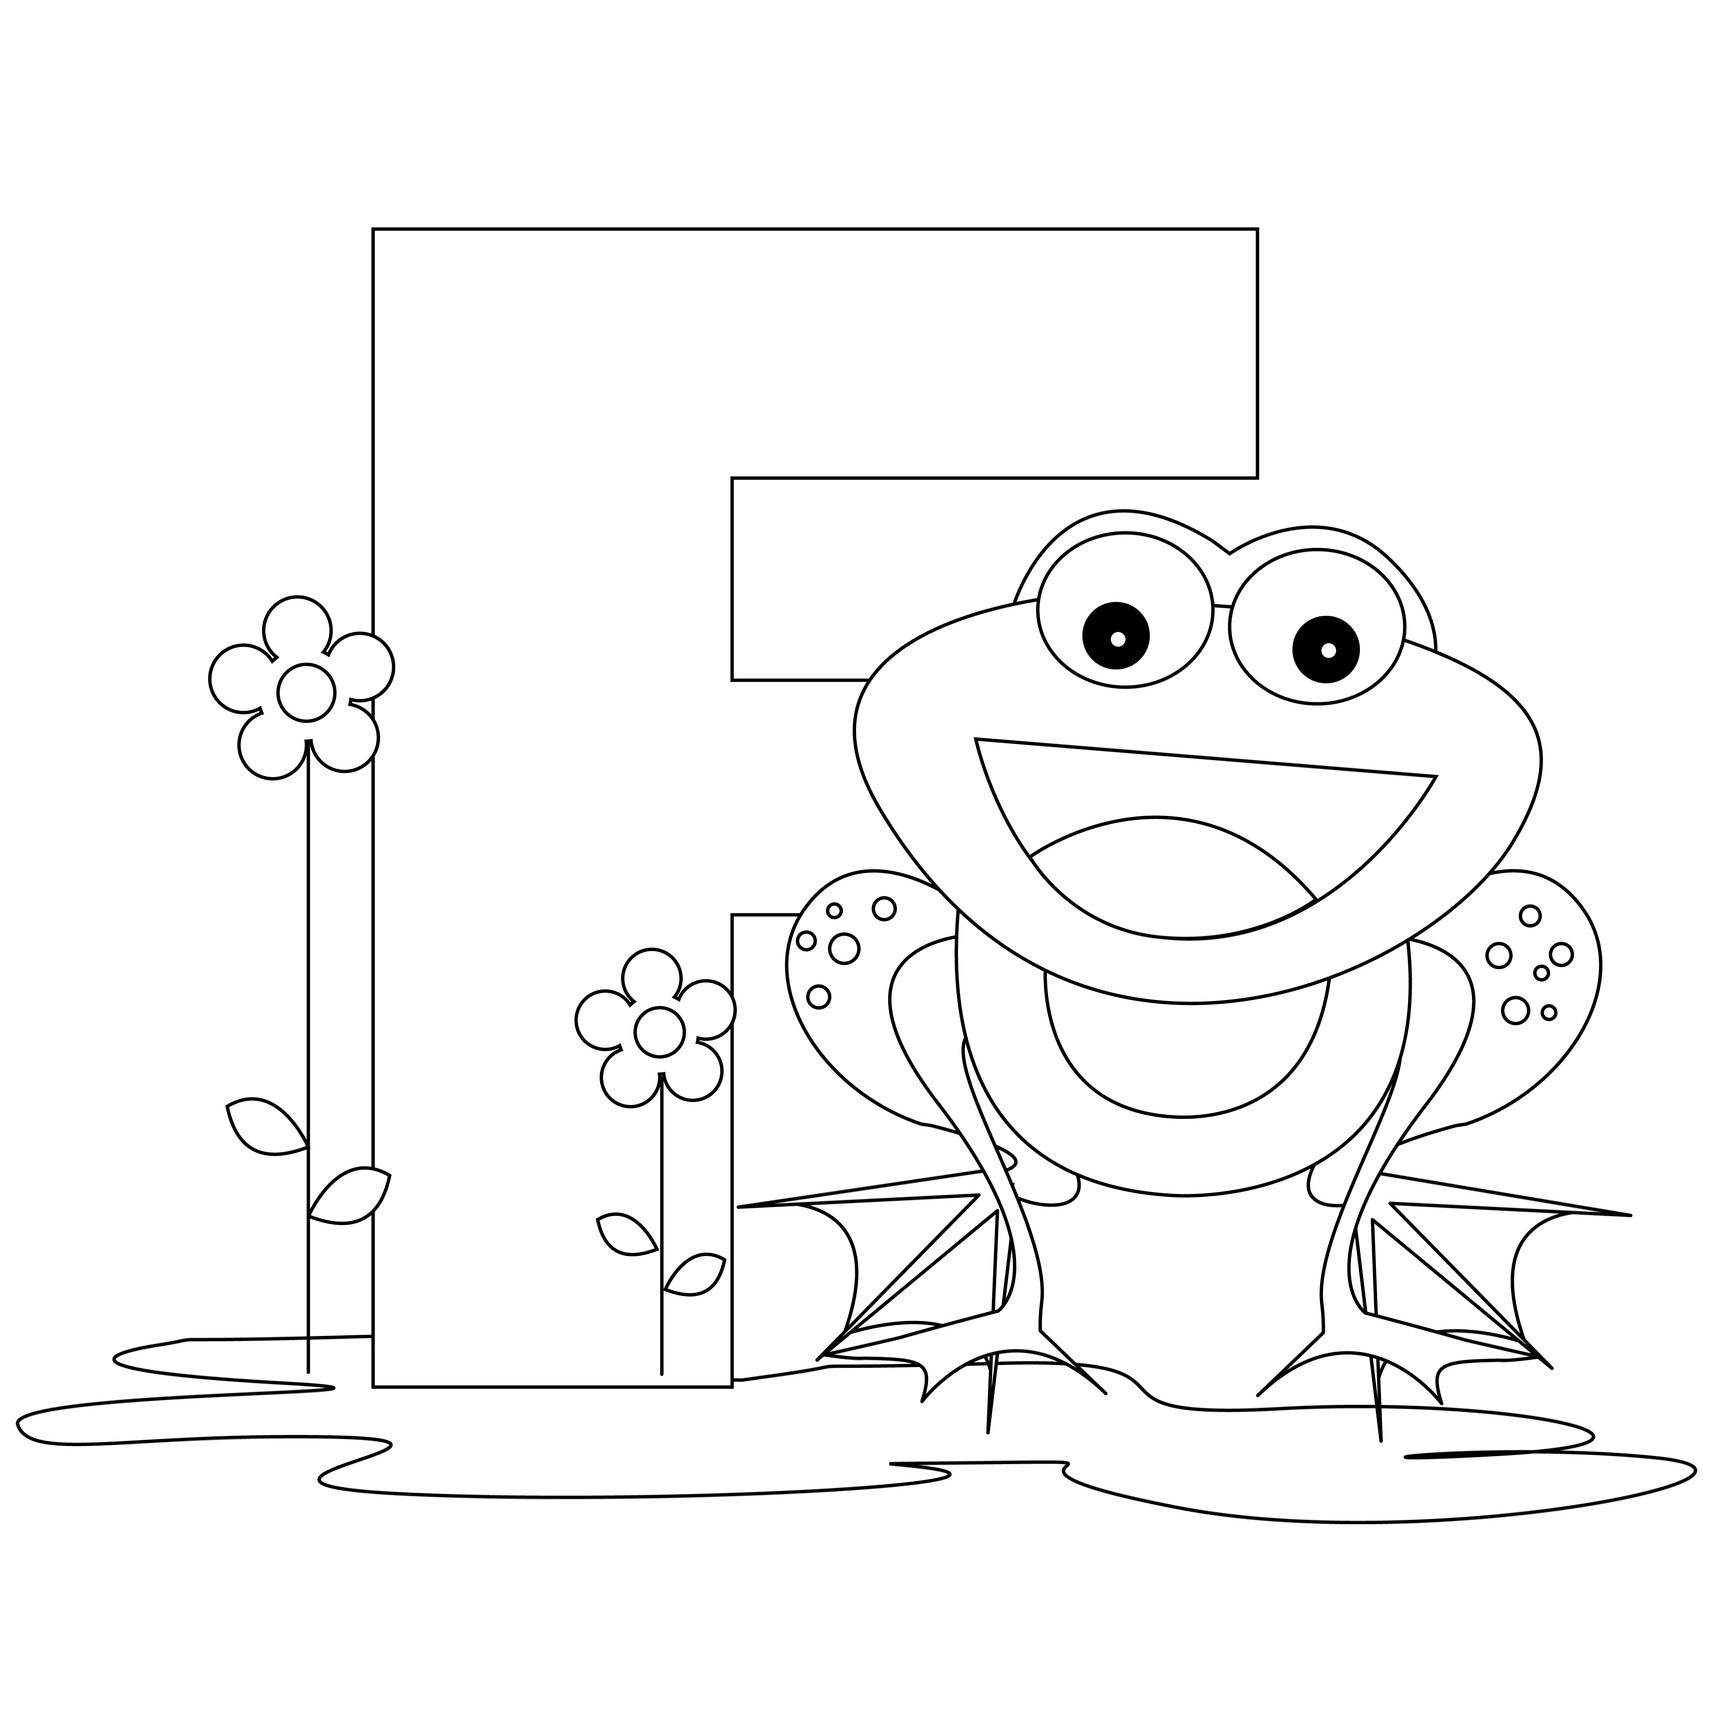 Free Printable Alphabet Coloring Pages For Kids - Best Coloring - Free Printable Alphabet Coloring Pages